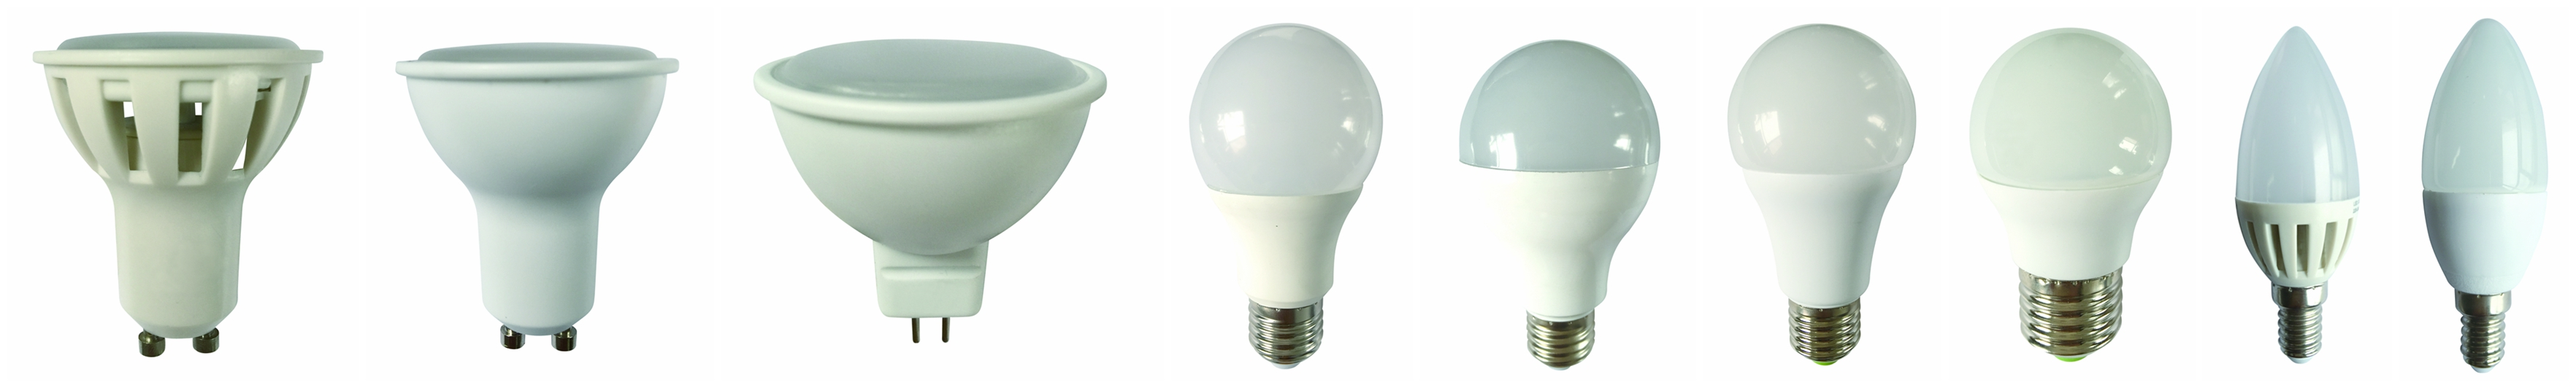 Bombillas led evergreen electric - Tipos de bombillas led ...